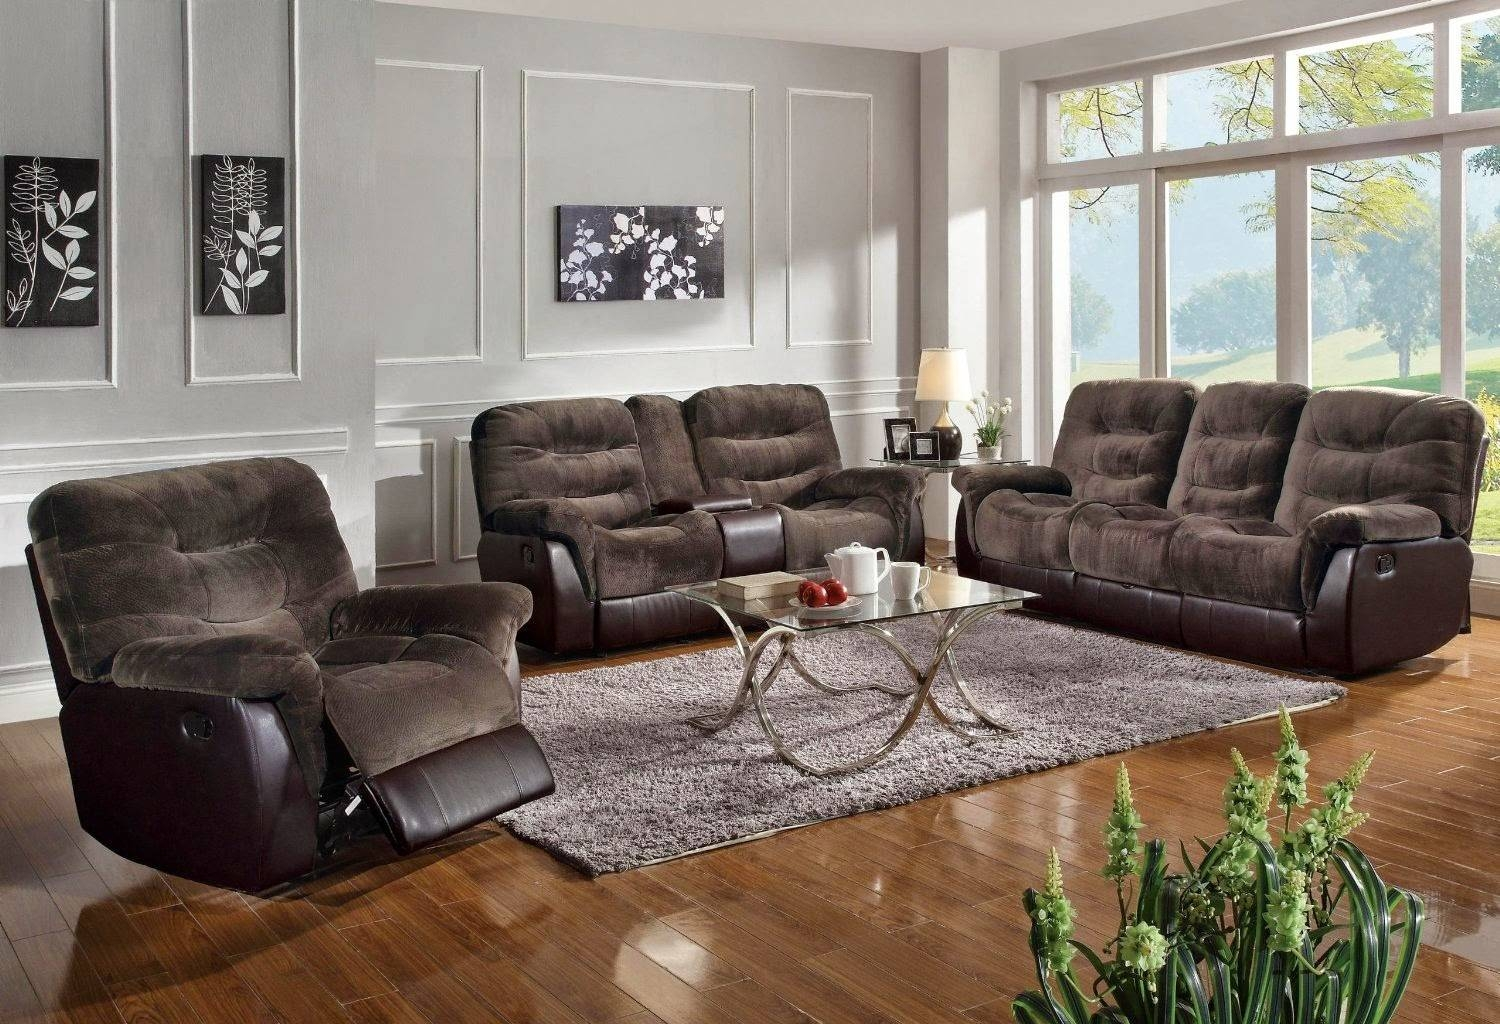 Wonderful Cheap Sectional Sofas For Small Spaces 34 With throughout Inexpensive Sectional Sofas for Small Spaces (Image 29 of 30)